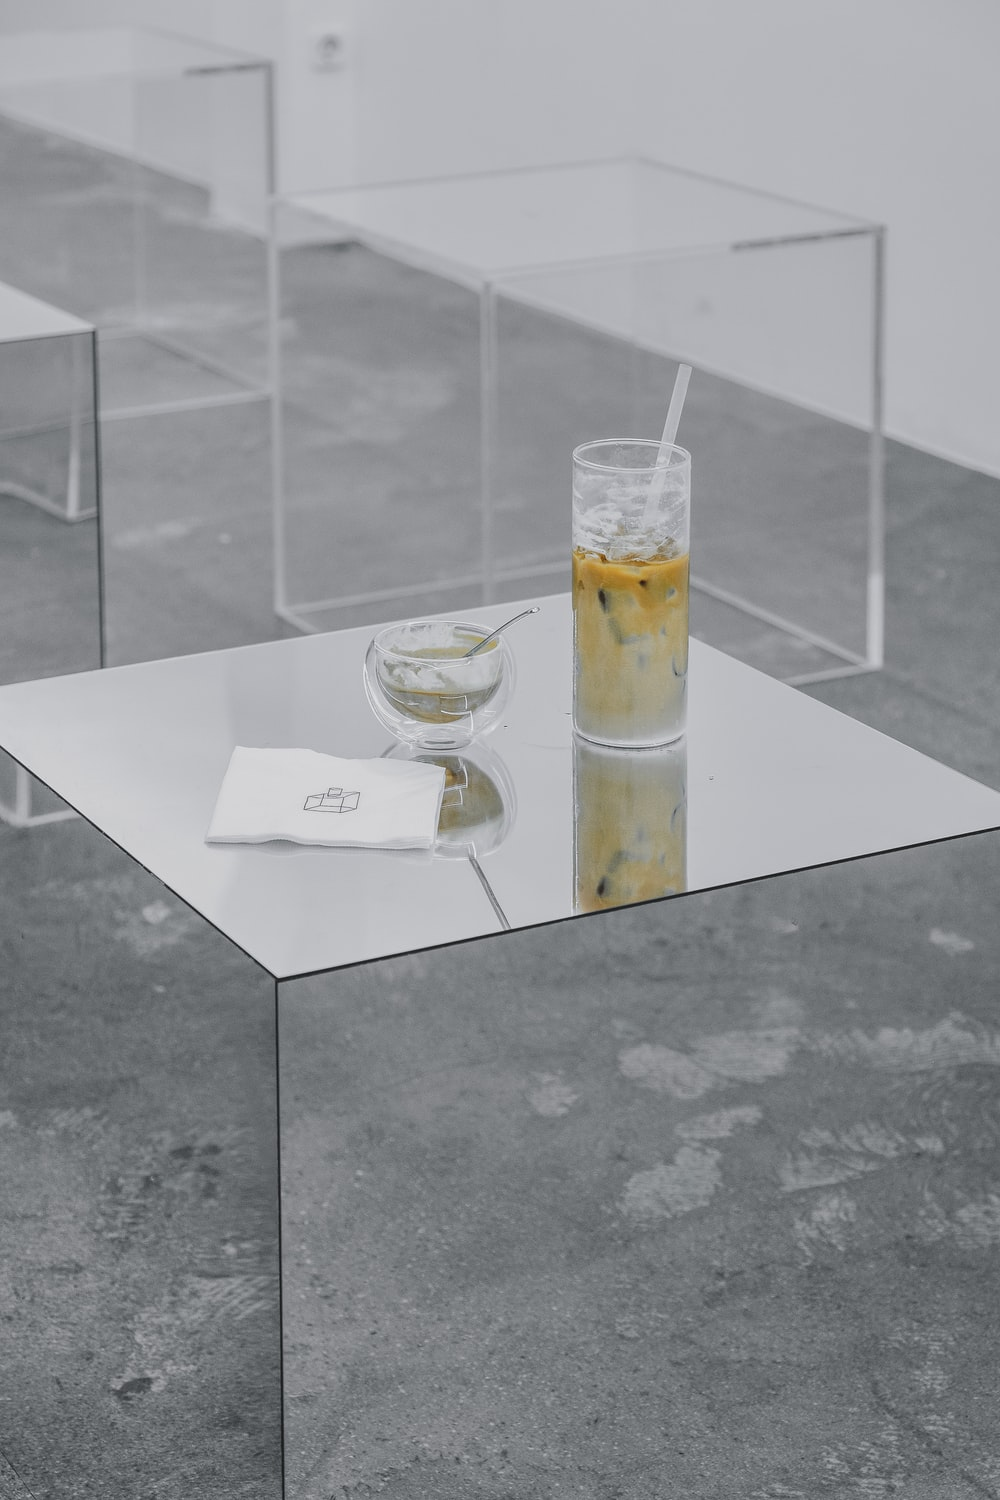 half-filled clear drinking glass with straw